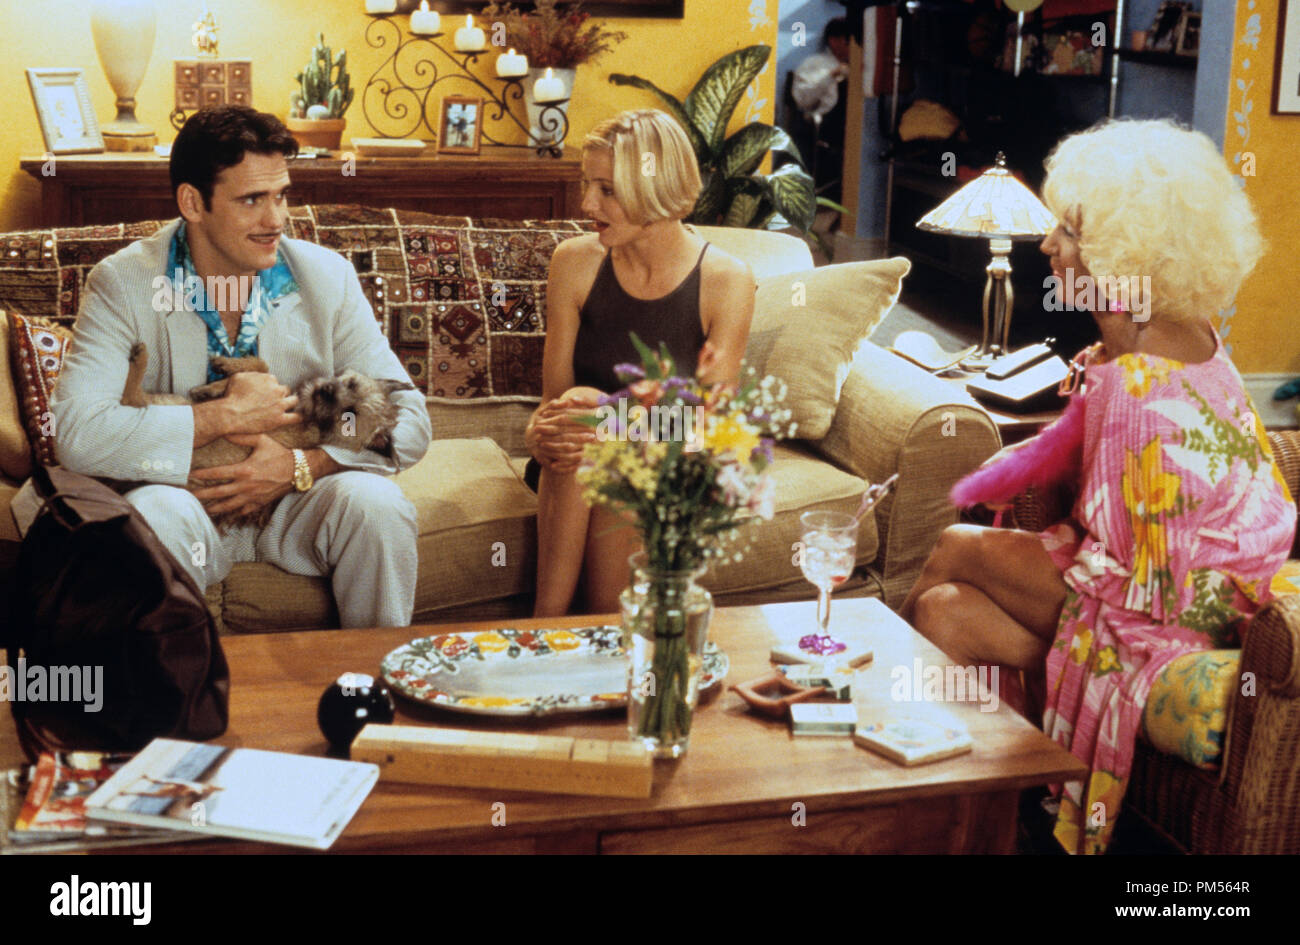 'There's Something About Mary' 1998 Matt Dillon, Cameron Diaz, Lin Shaye - Stock Image